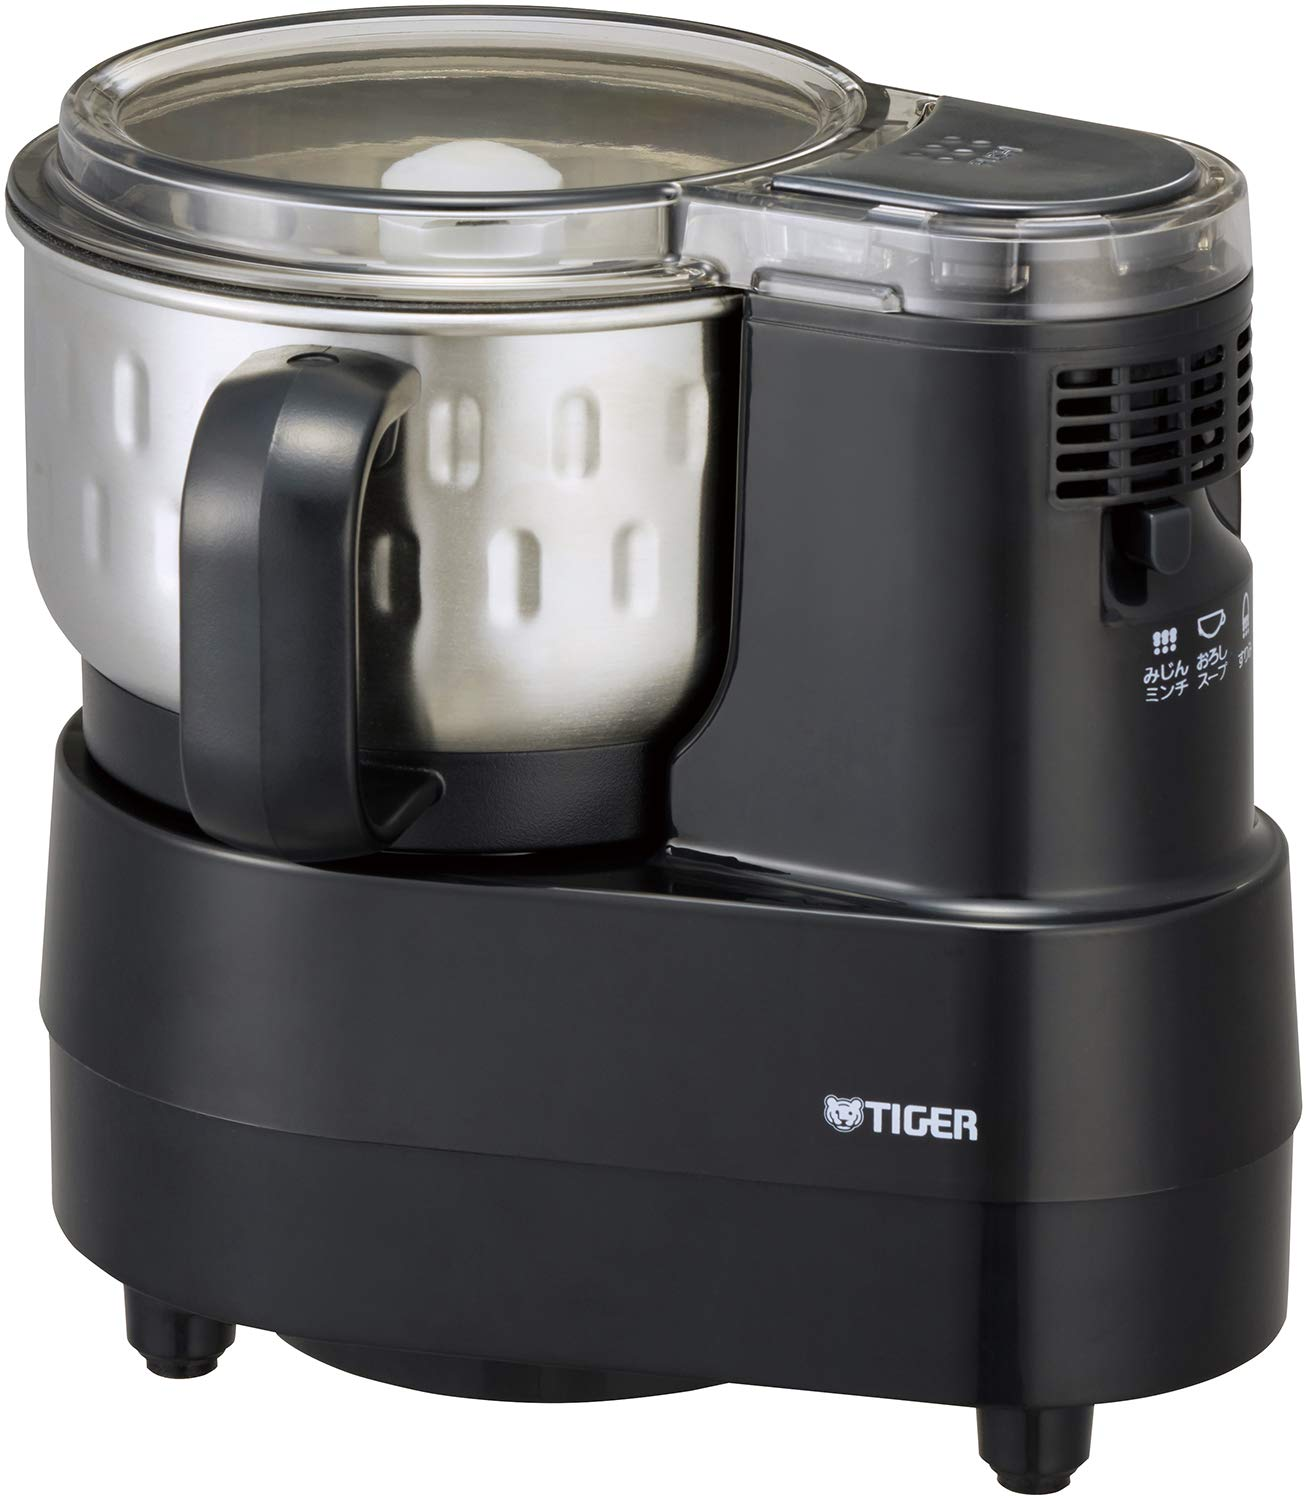 TIGER Micro Computer Food Processor SKF-H100K (BLACK)【Japan Domestic Genuine Products】【Ships from Japan】